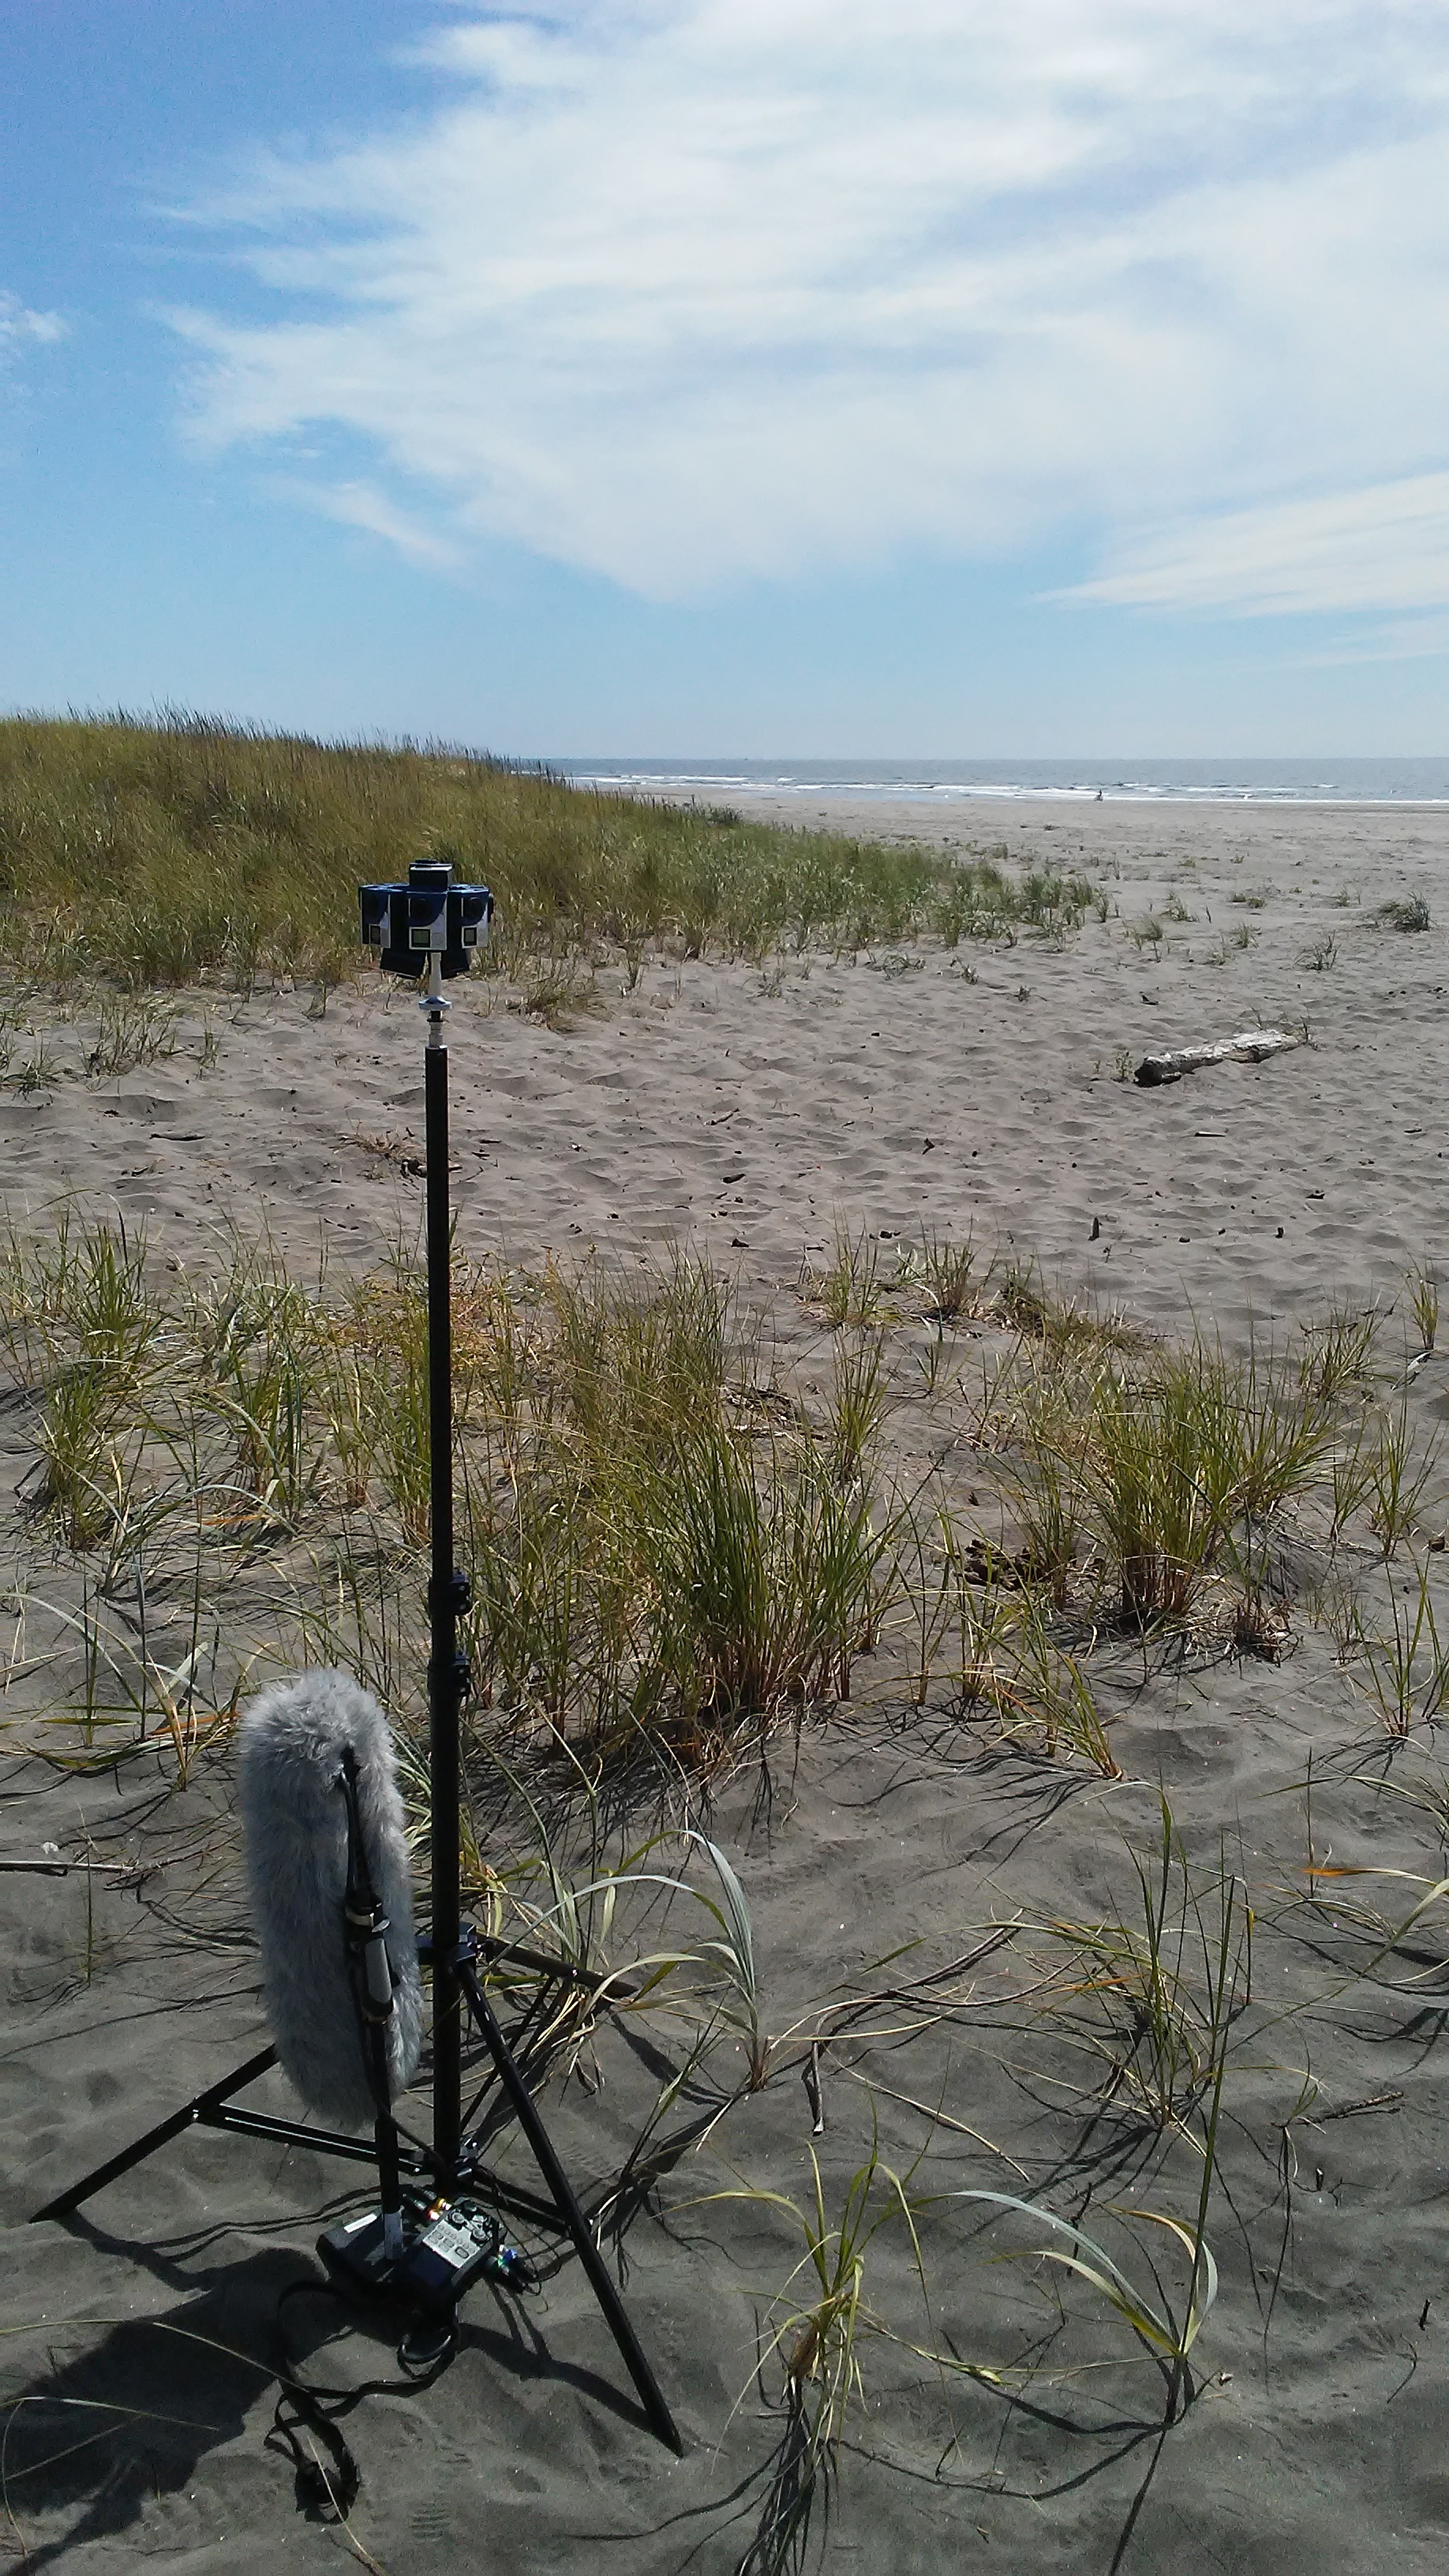 360 camera set-up with ambisonic audio